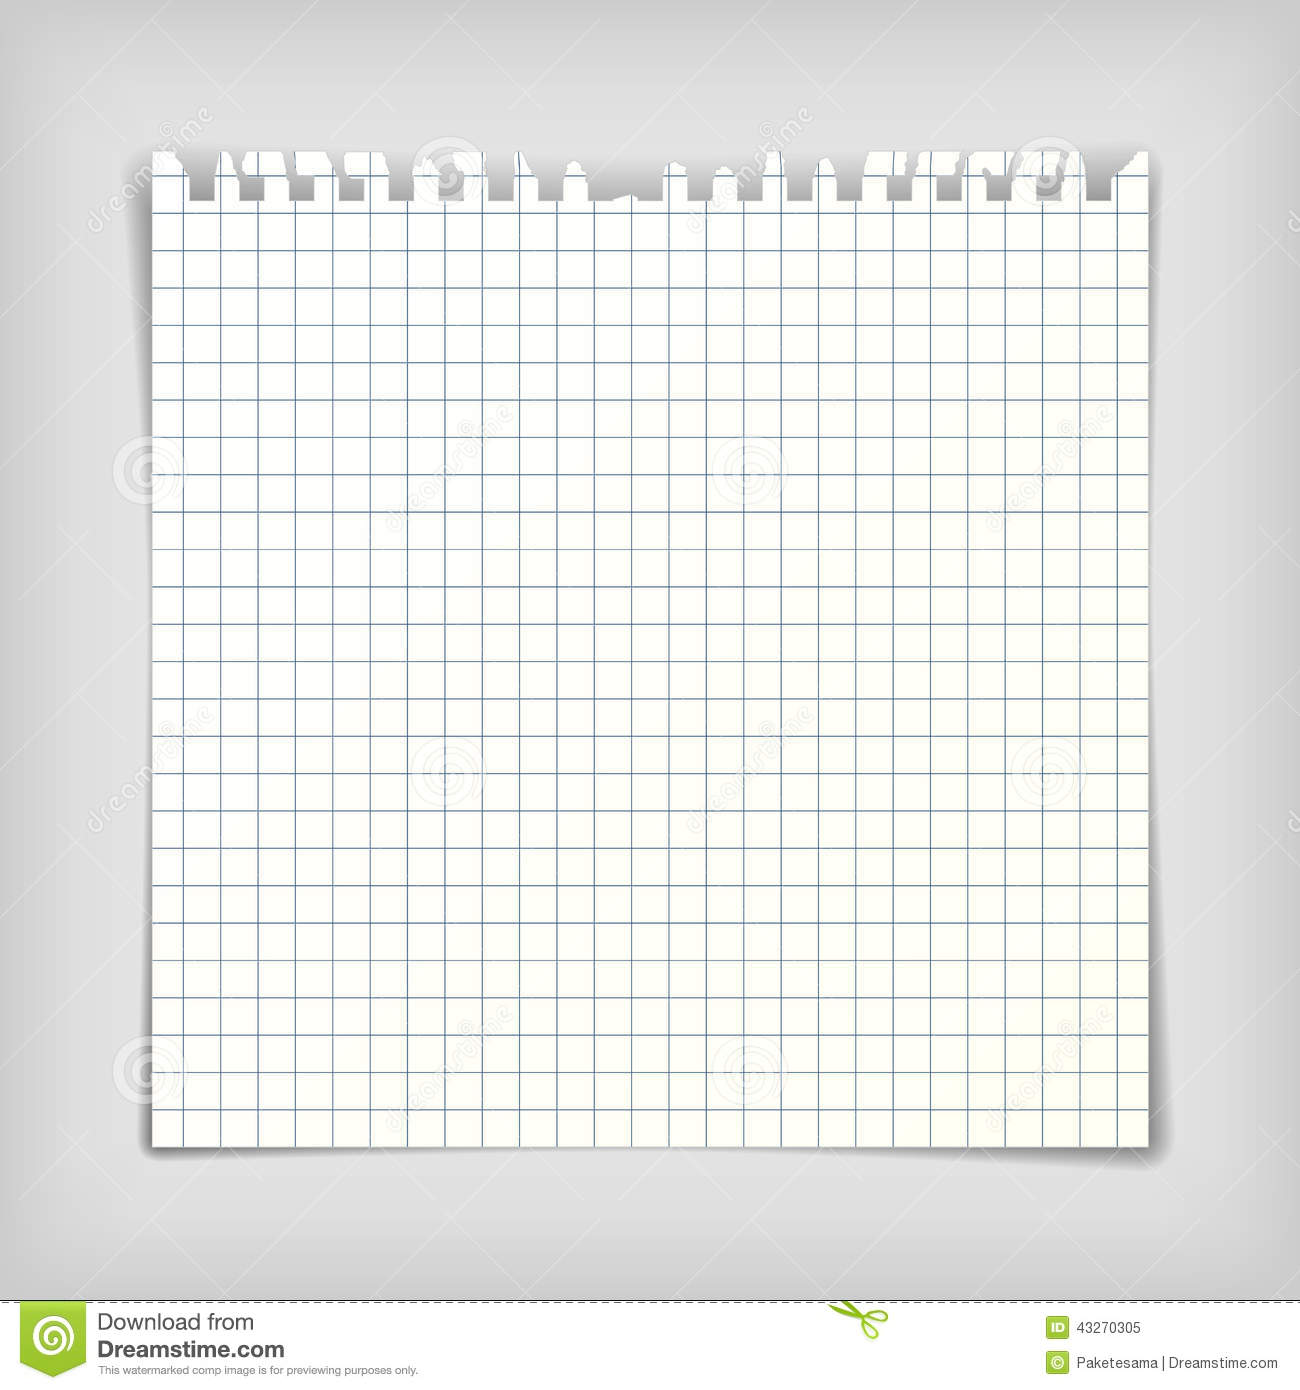 Square note paper sheet with squares, realistic vector illustration